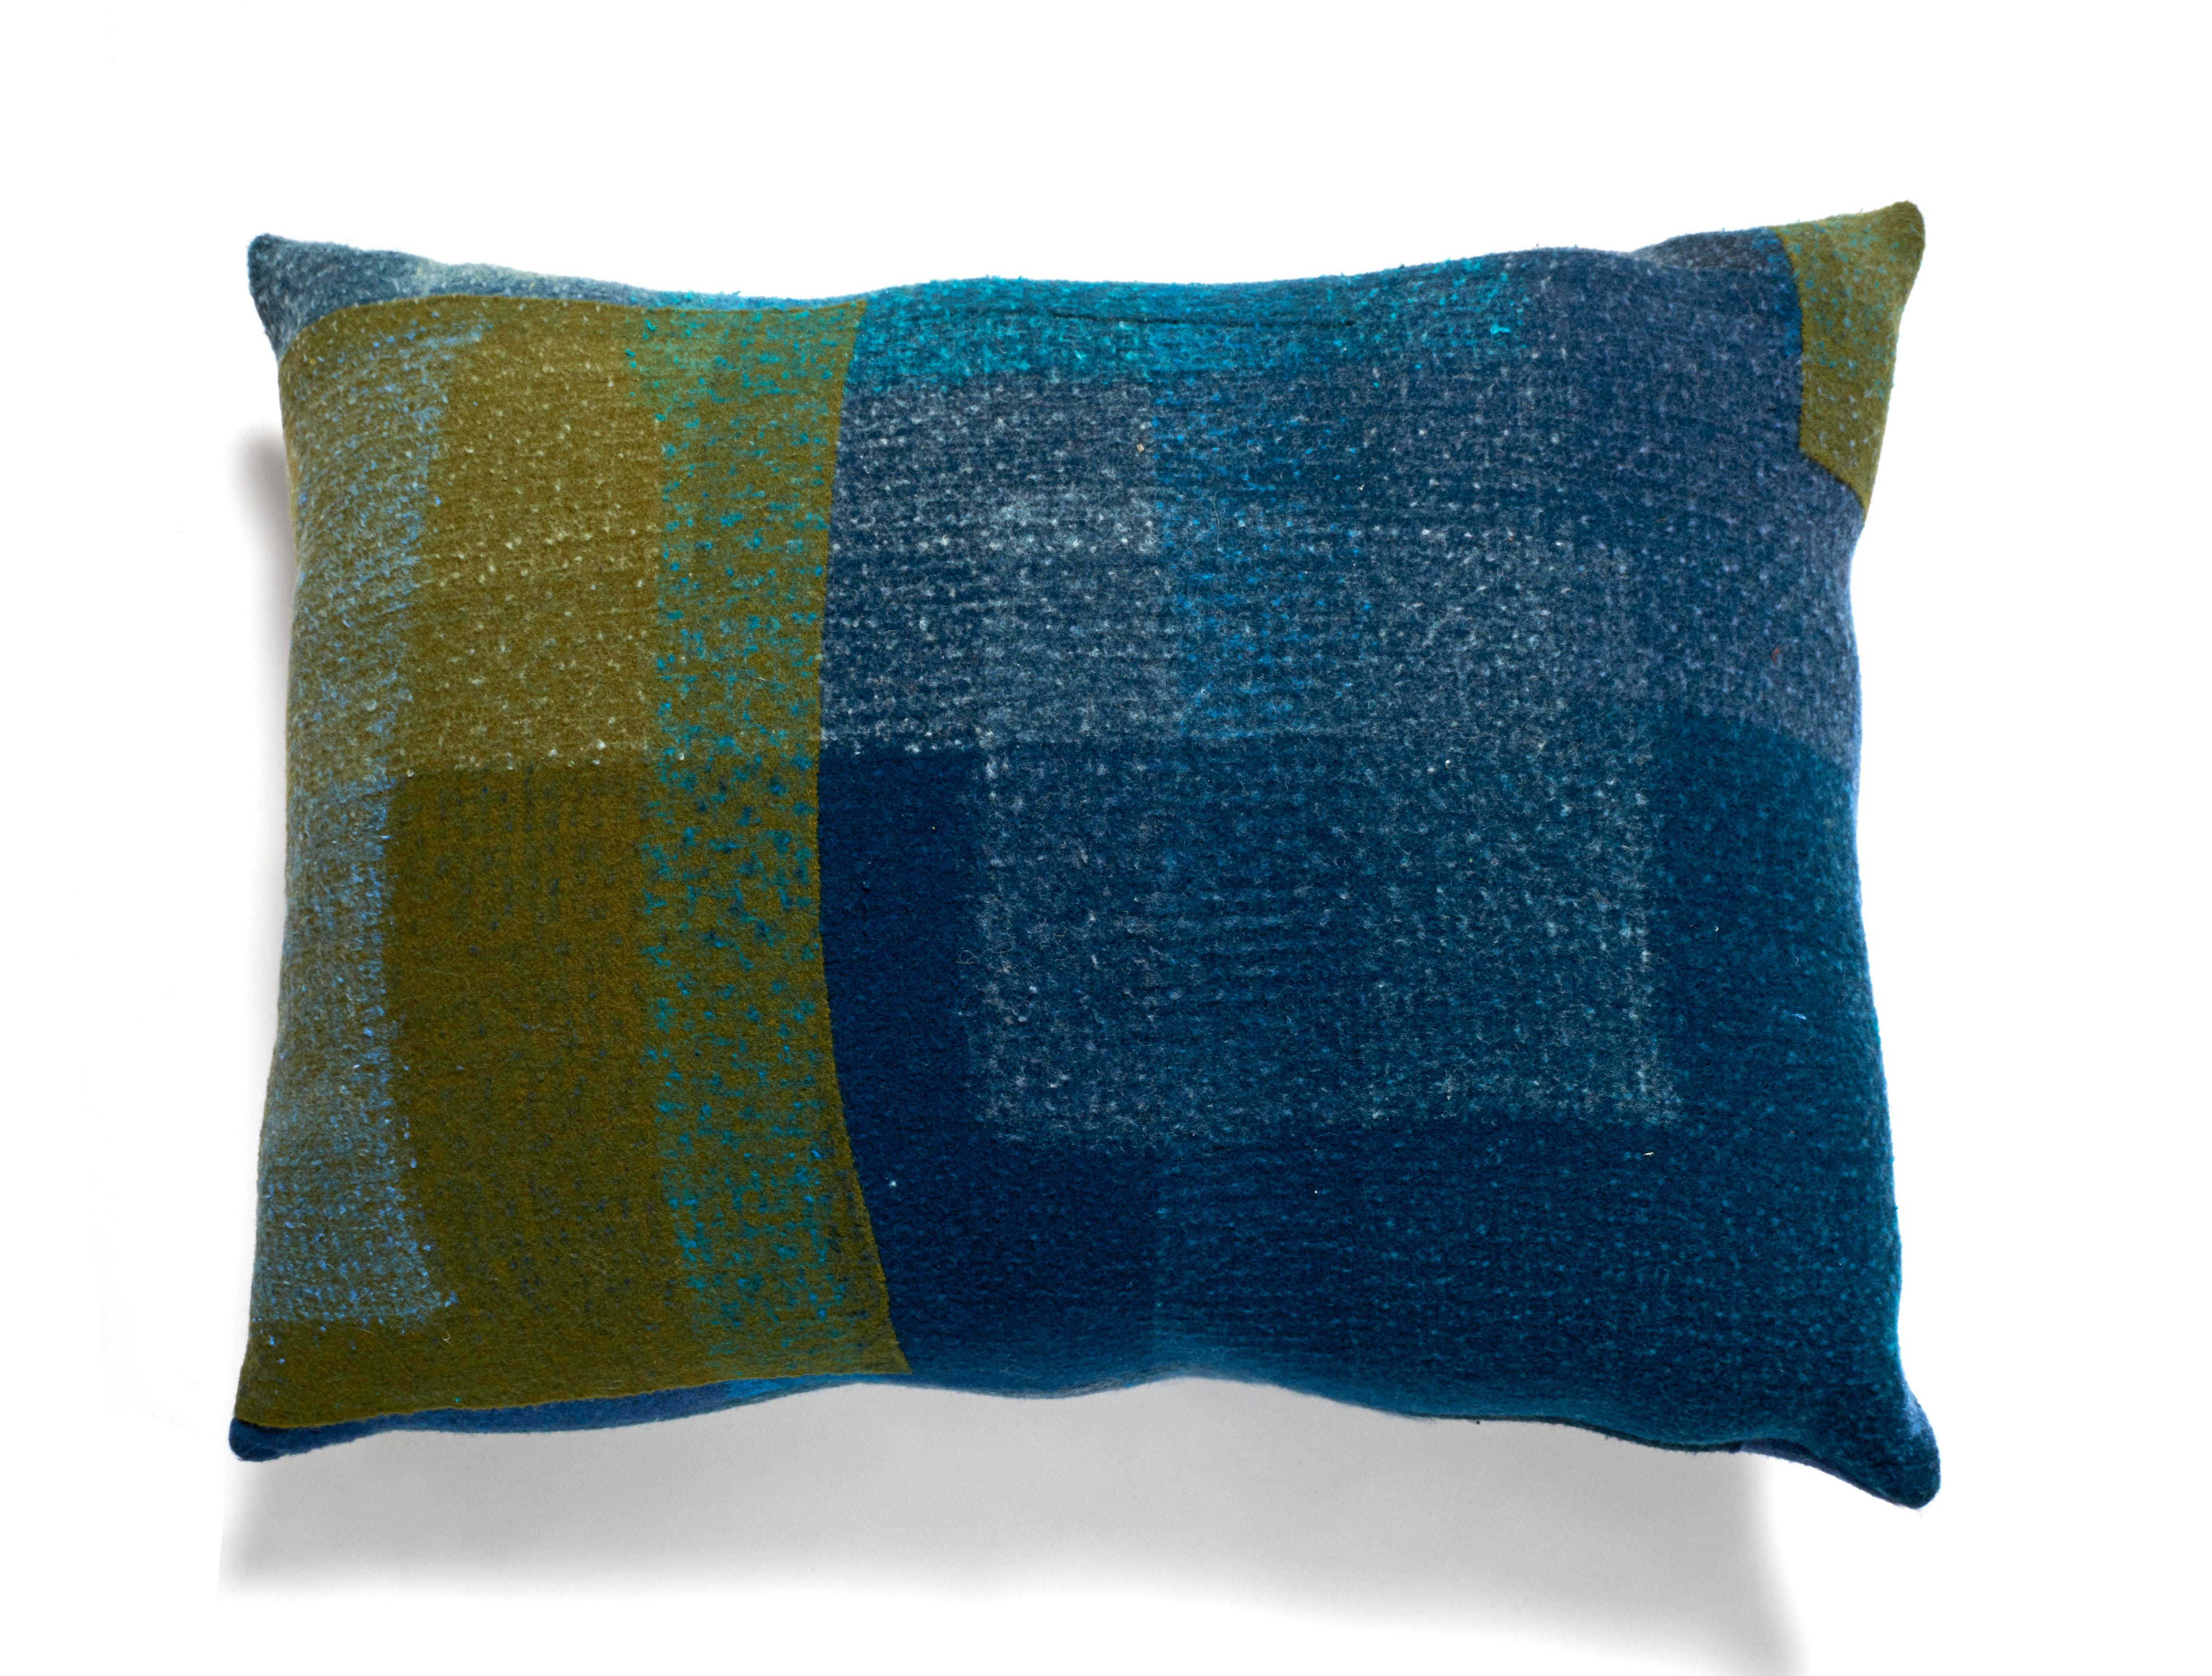 Eileen Fisher also has begun an initiative called DesignWork in which it partners with makers who felt and stitch decorative pillows, wall hangings and other items from used garments that consumers have returned to the company as part of its take back program. The program was created to transform and up cycle unwanted clothing into new creations. Pillow prices range from $250 to $325.